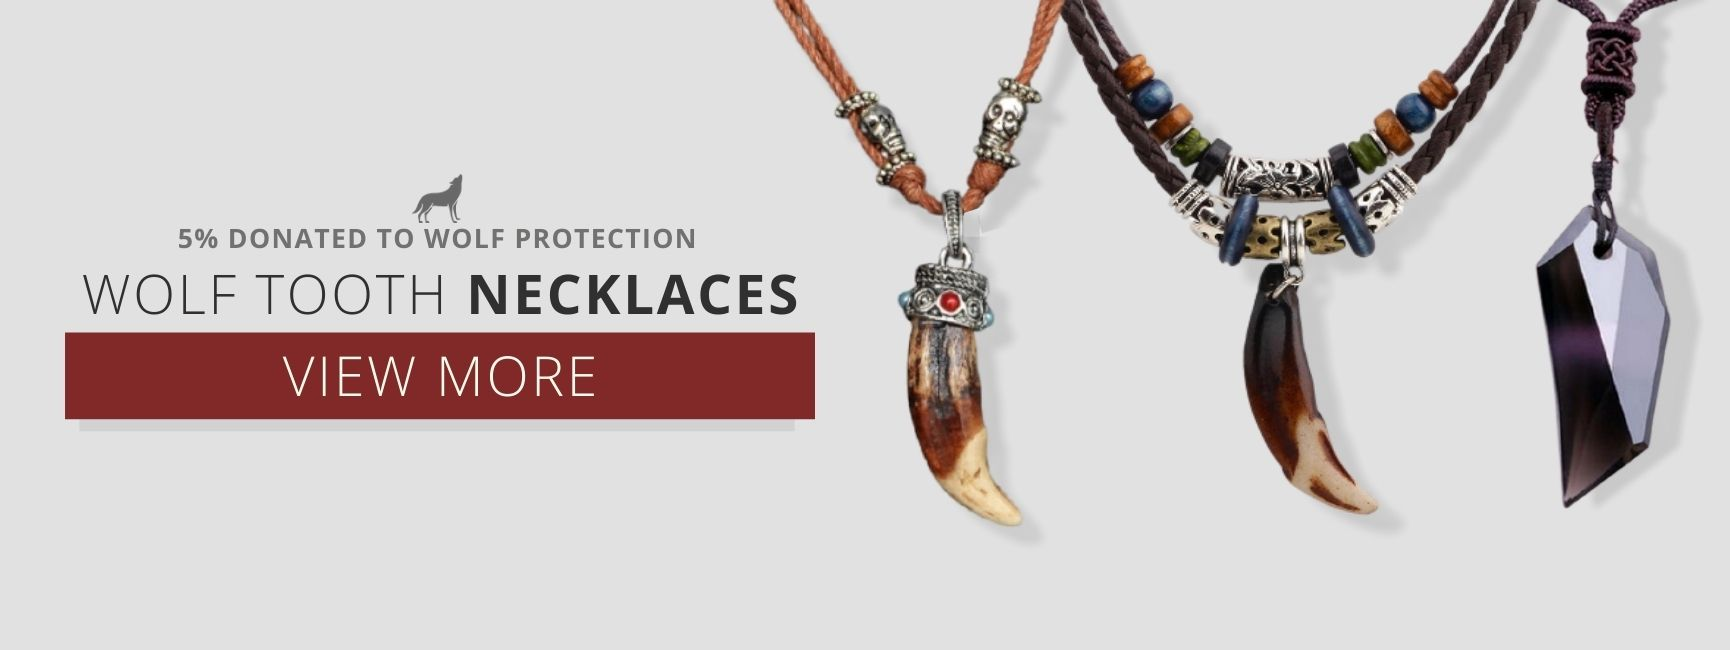 wolf teeth necklaces